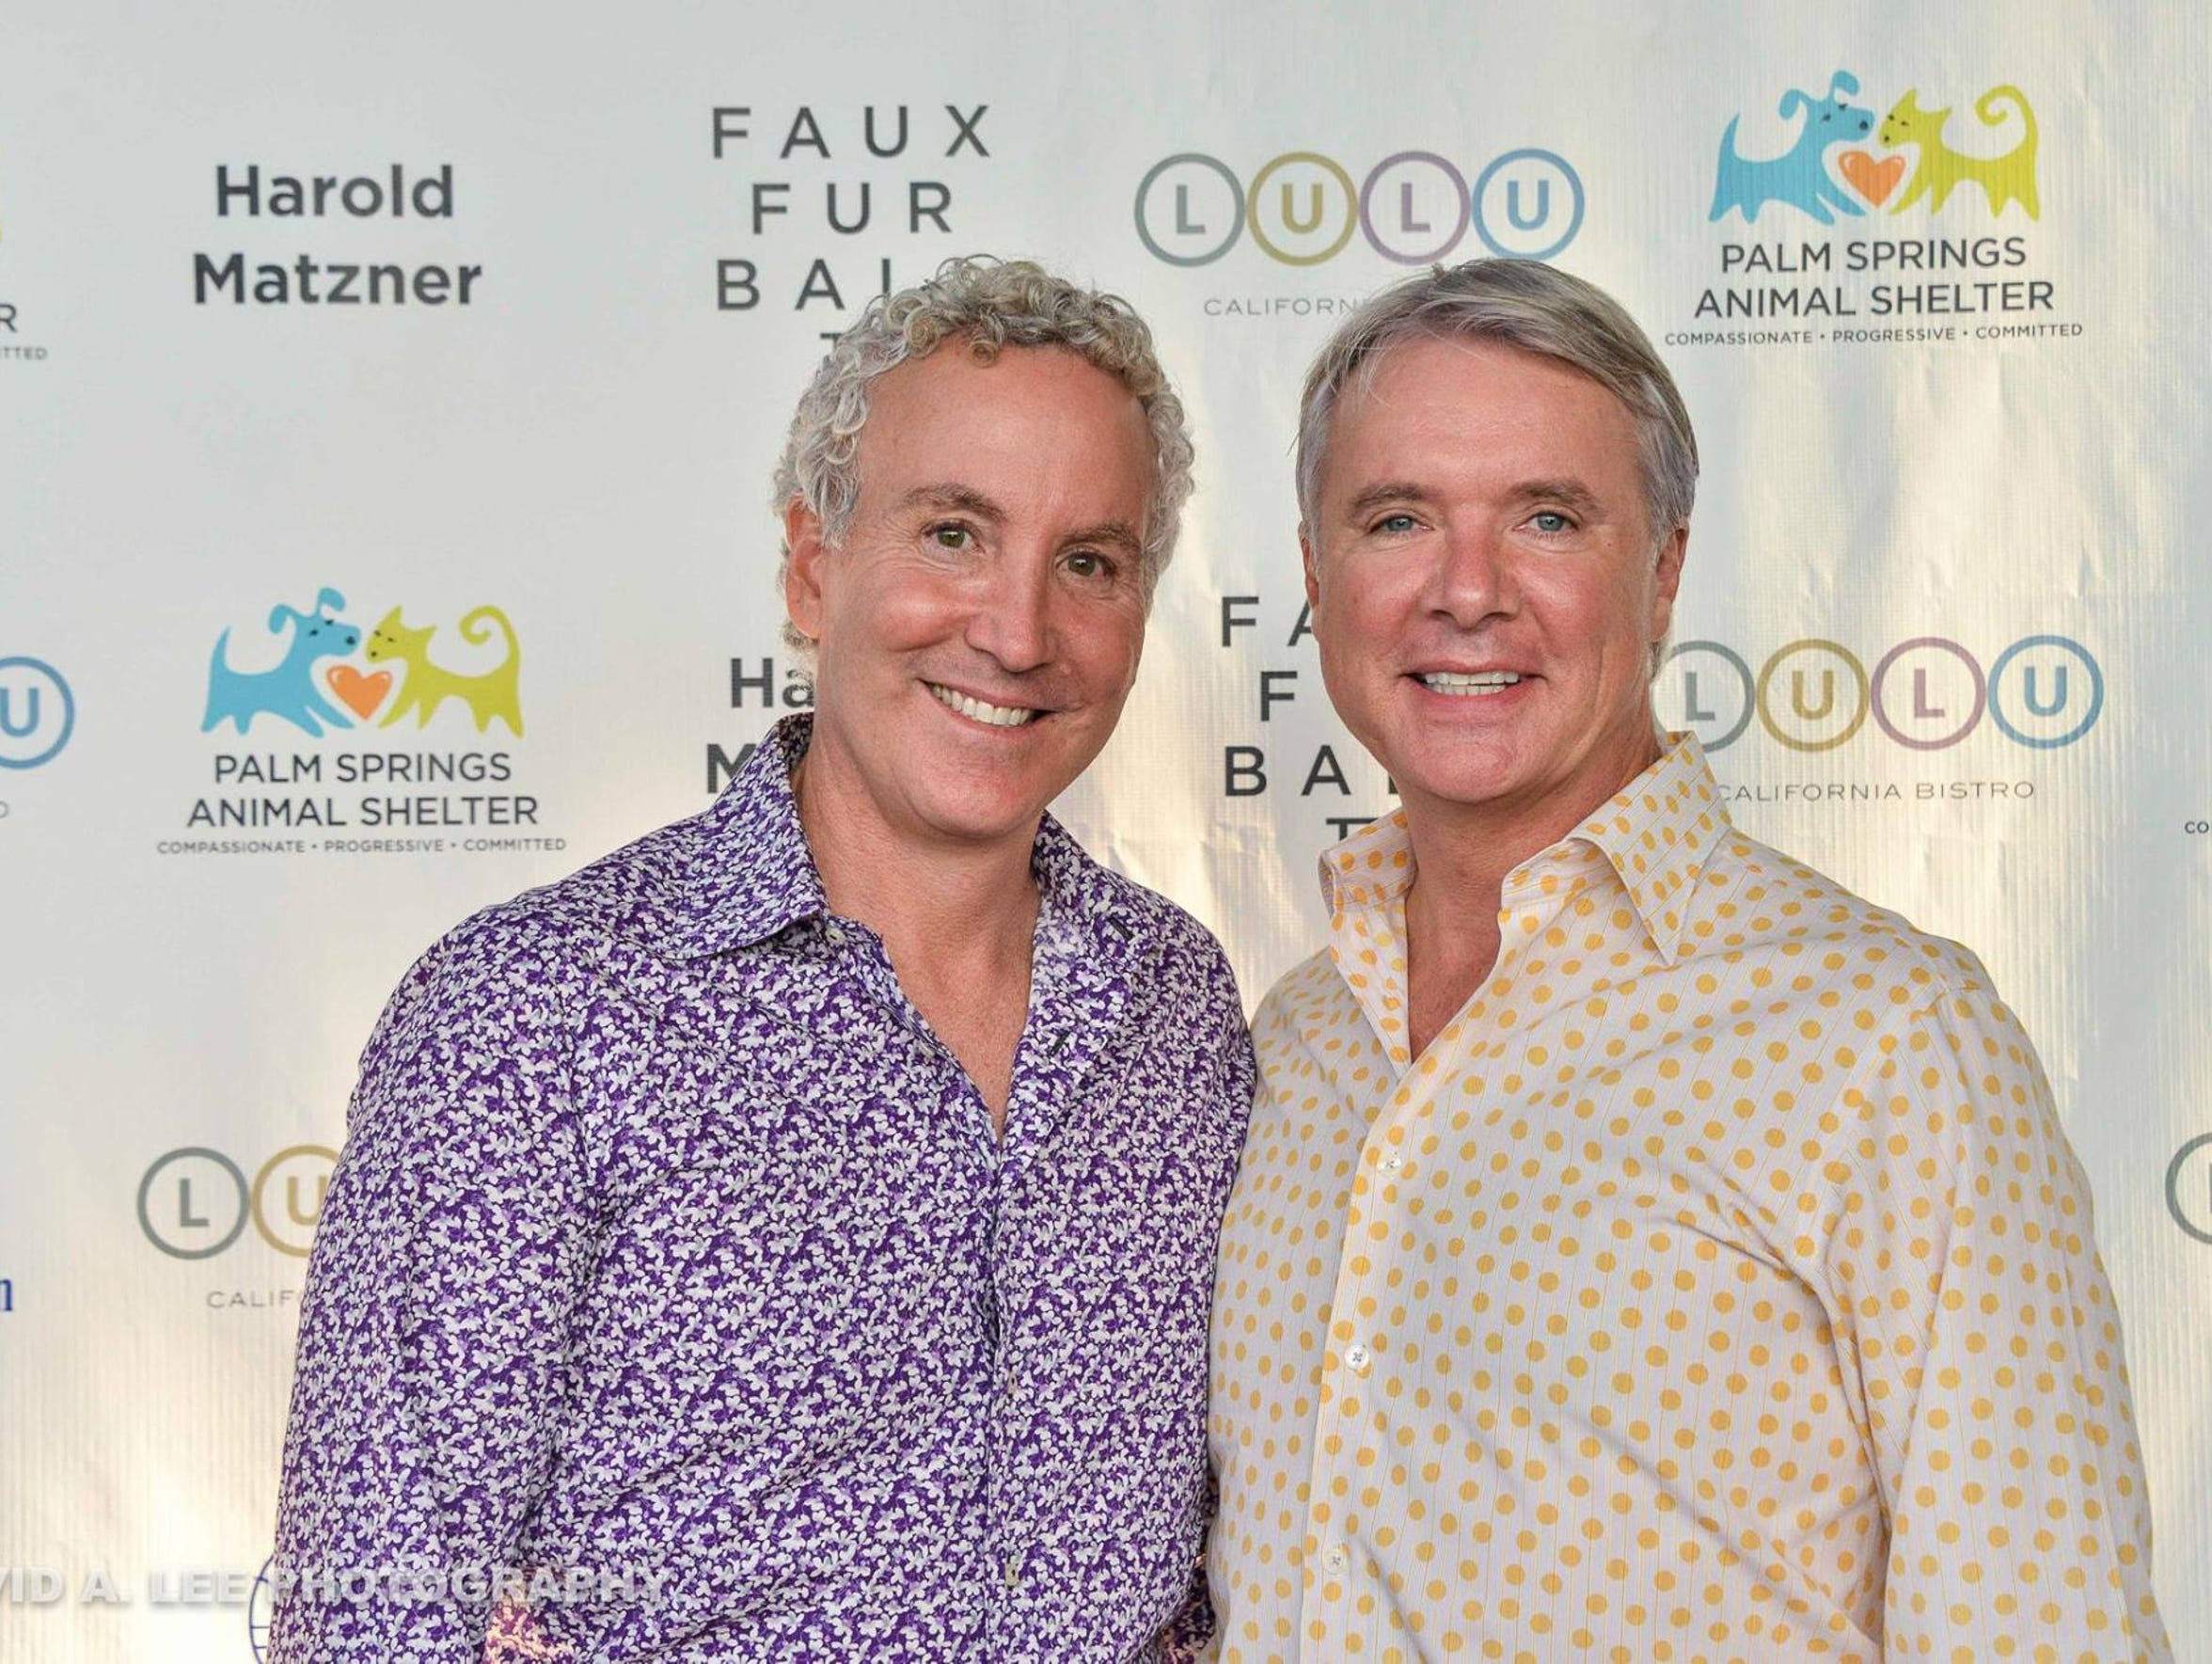 From left to right, Geoff Kors and his husband James